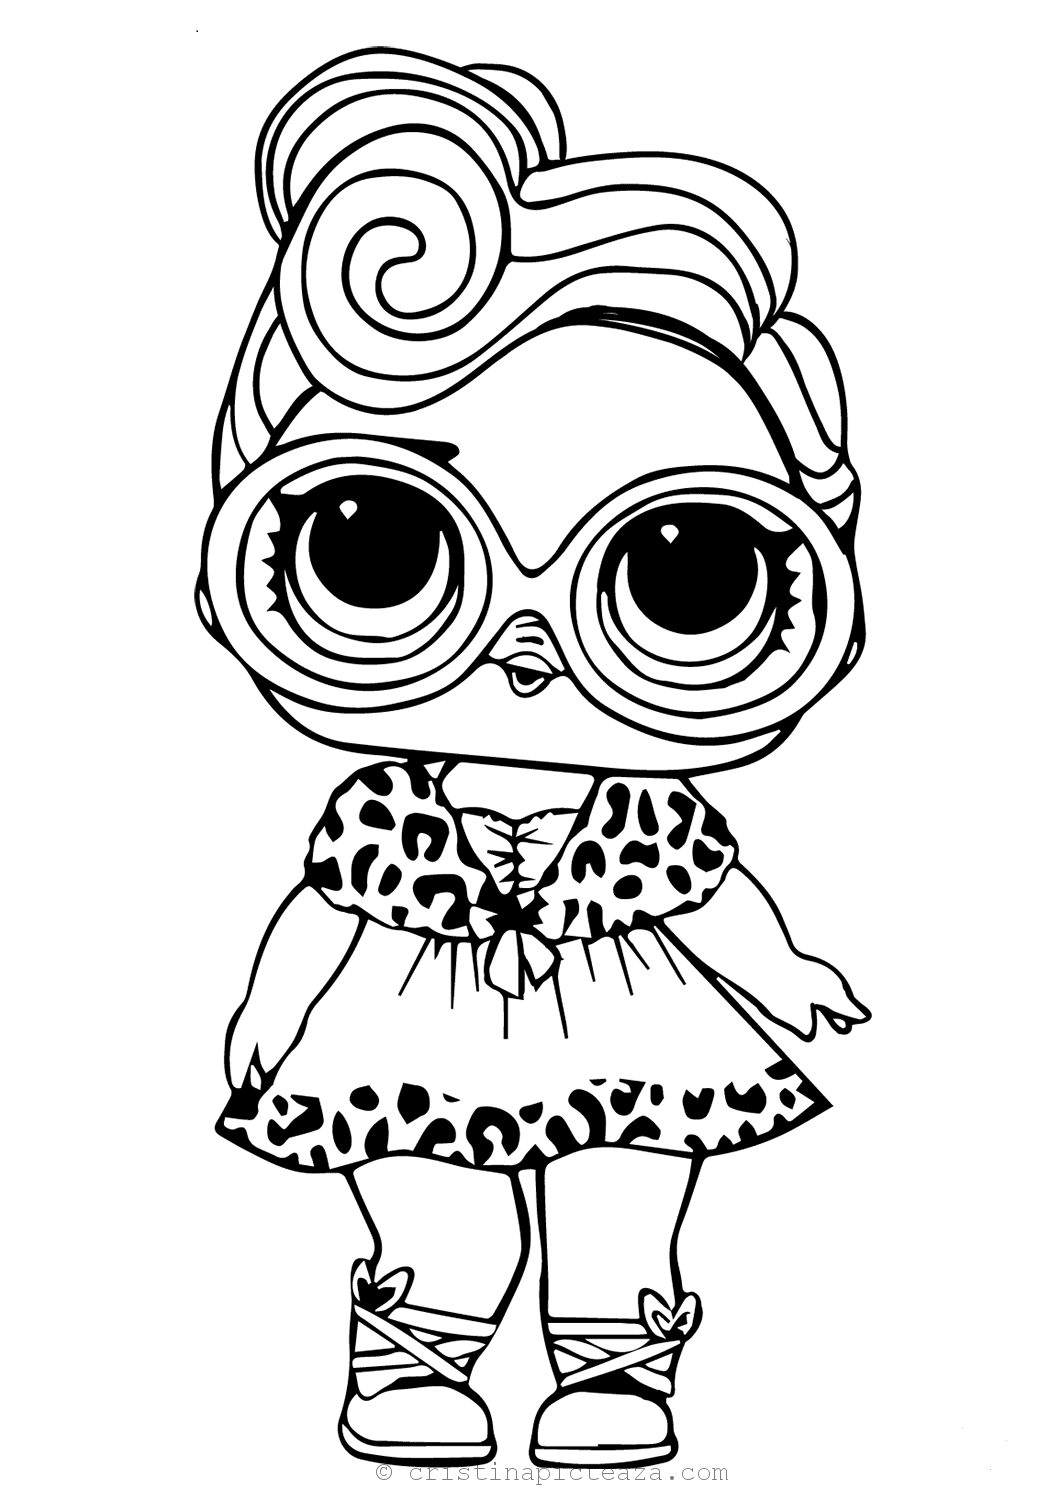 free printable lol coloring pages lol surprise dolls coloring pages print them for free pages coloring printable lol free